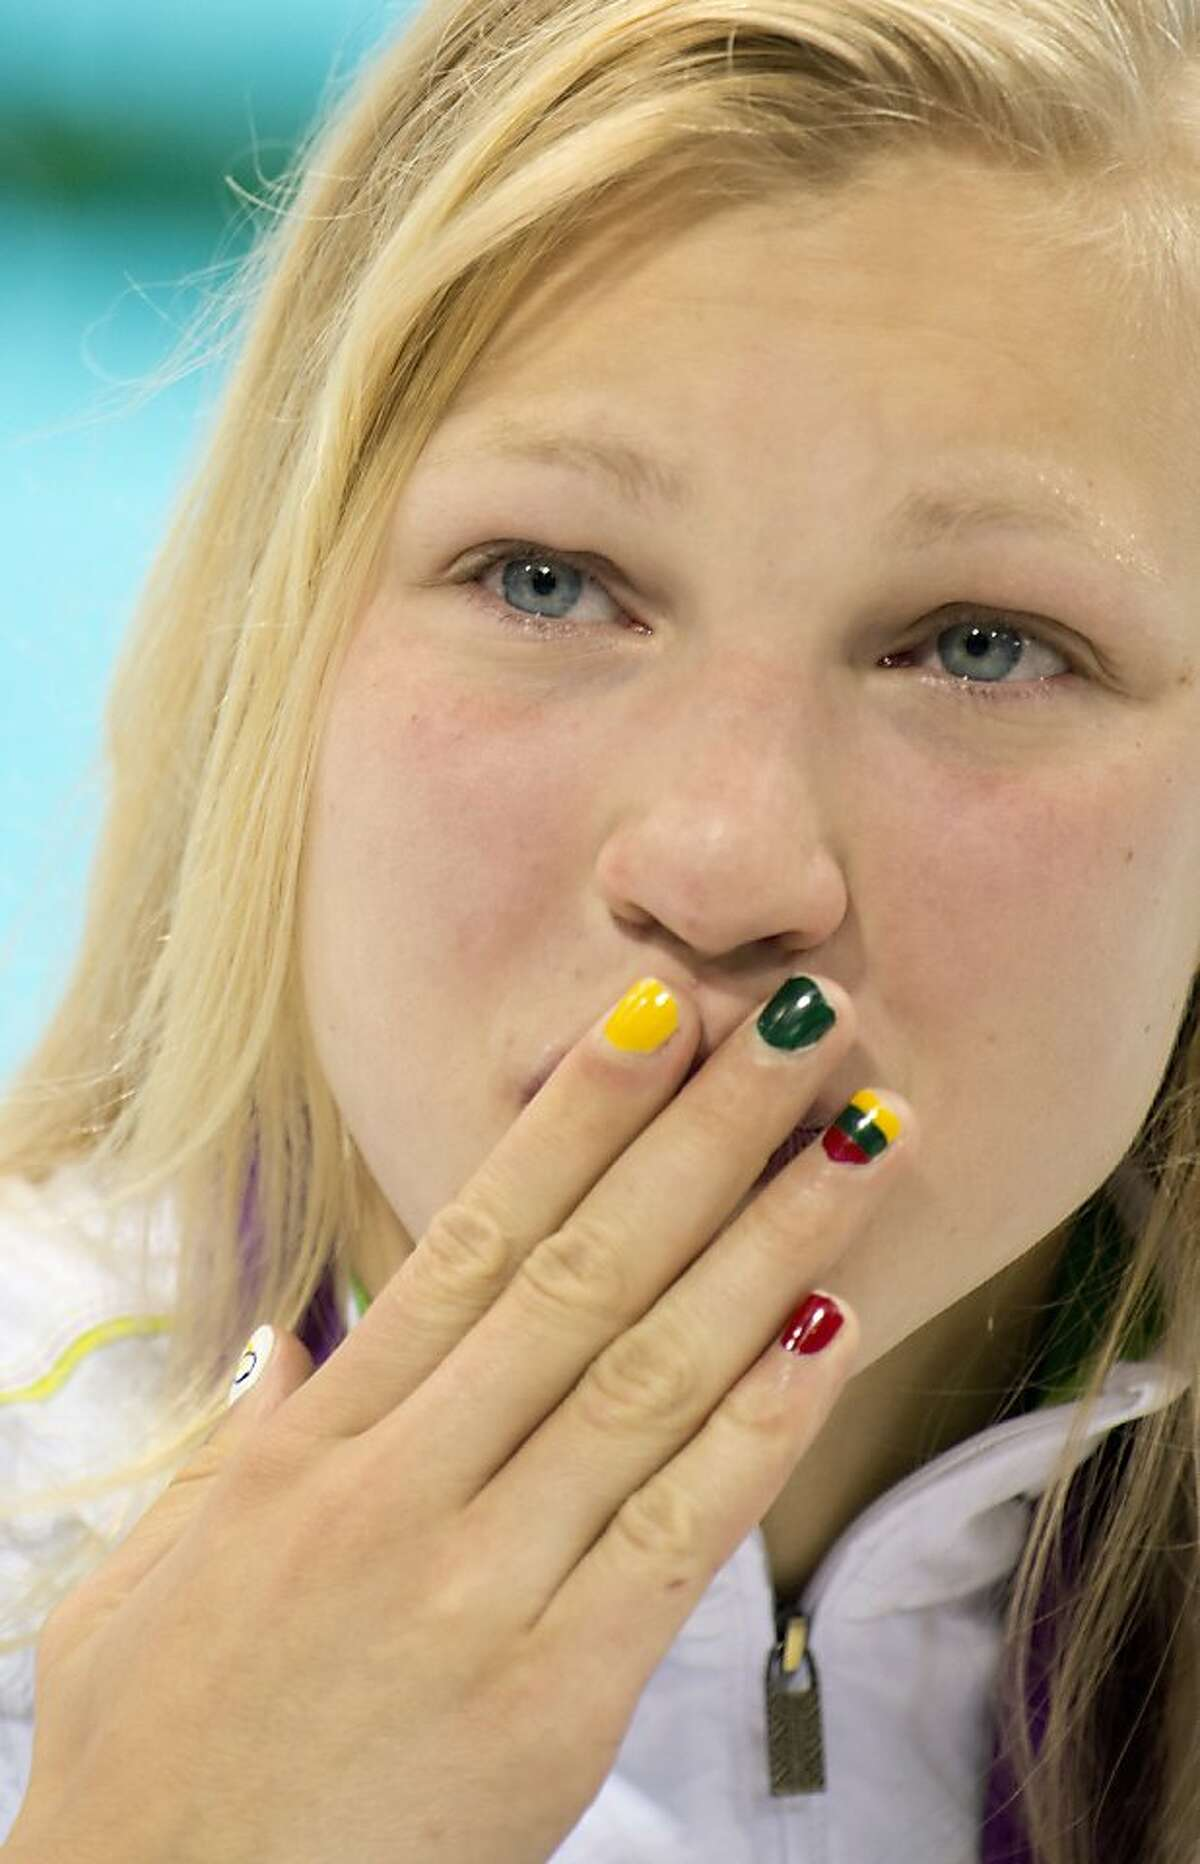 Ruta Meilutyte of Lithuania with her national flag painted on her nails blows a kiss to the crowd at the Aquatics centre after winning the women's 100m breaststroke of the 2012 Olympic Games in London on July 30, 2012. AFP PHOTO / ODD ANDERSENODD ANDERSEN/AFP/GettyImages